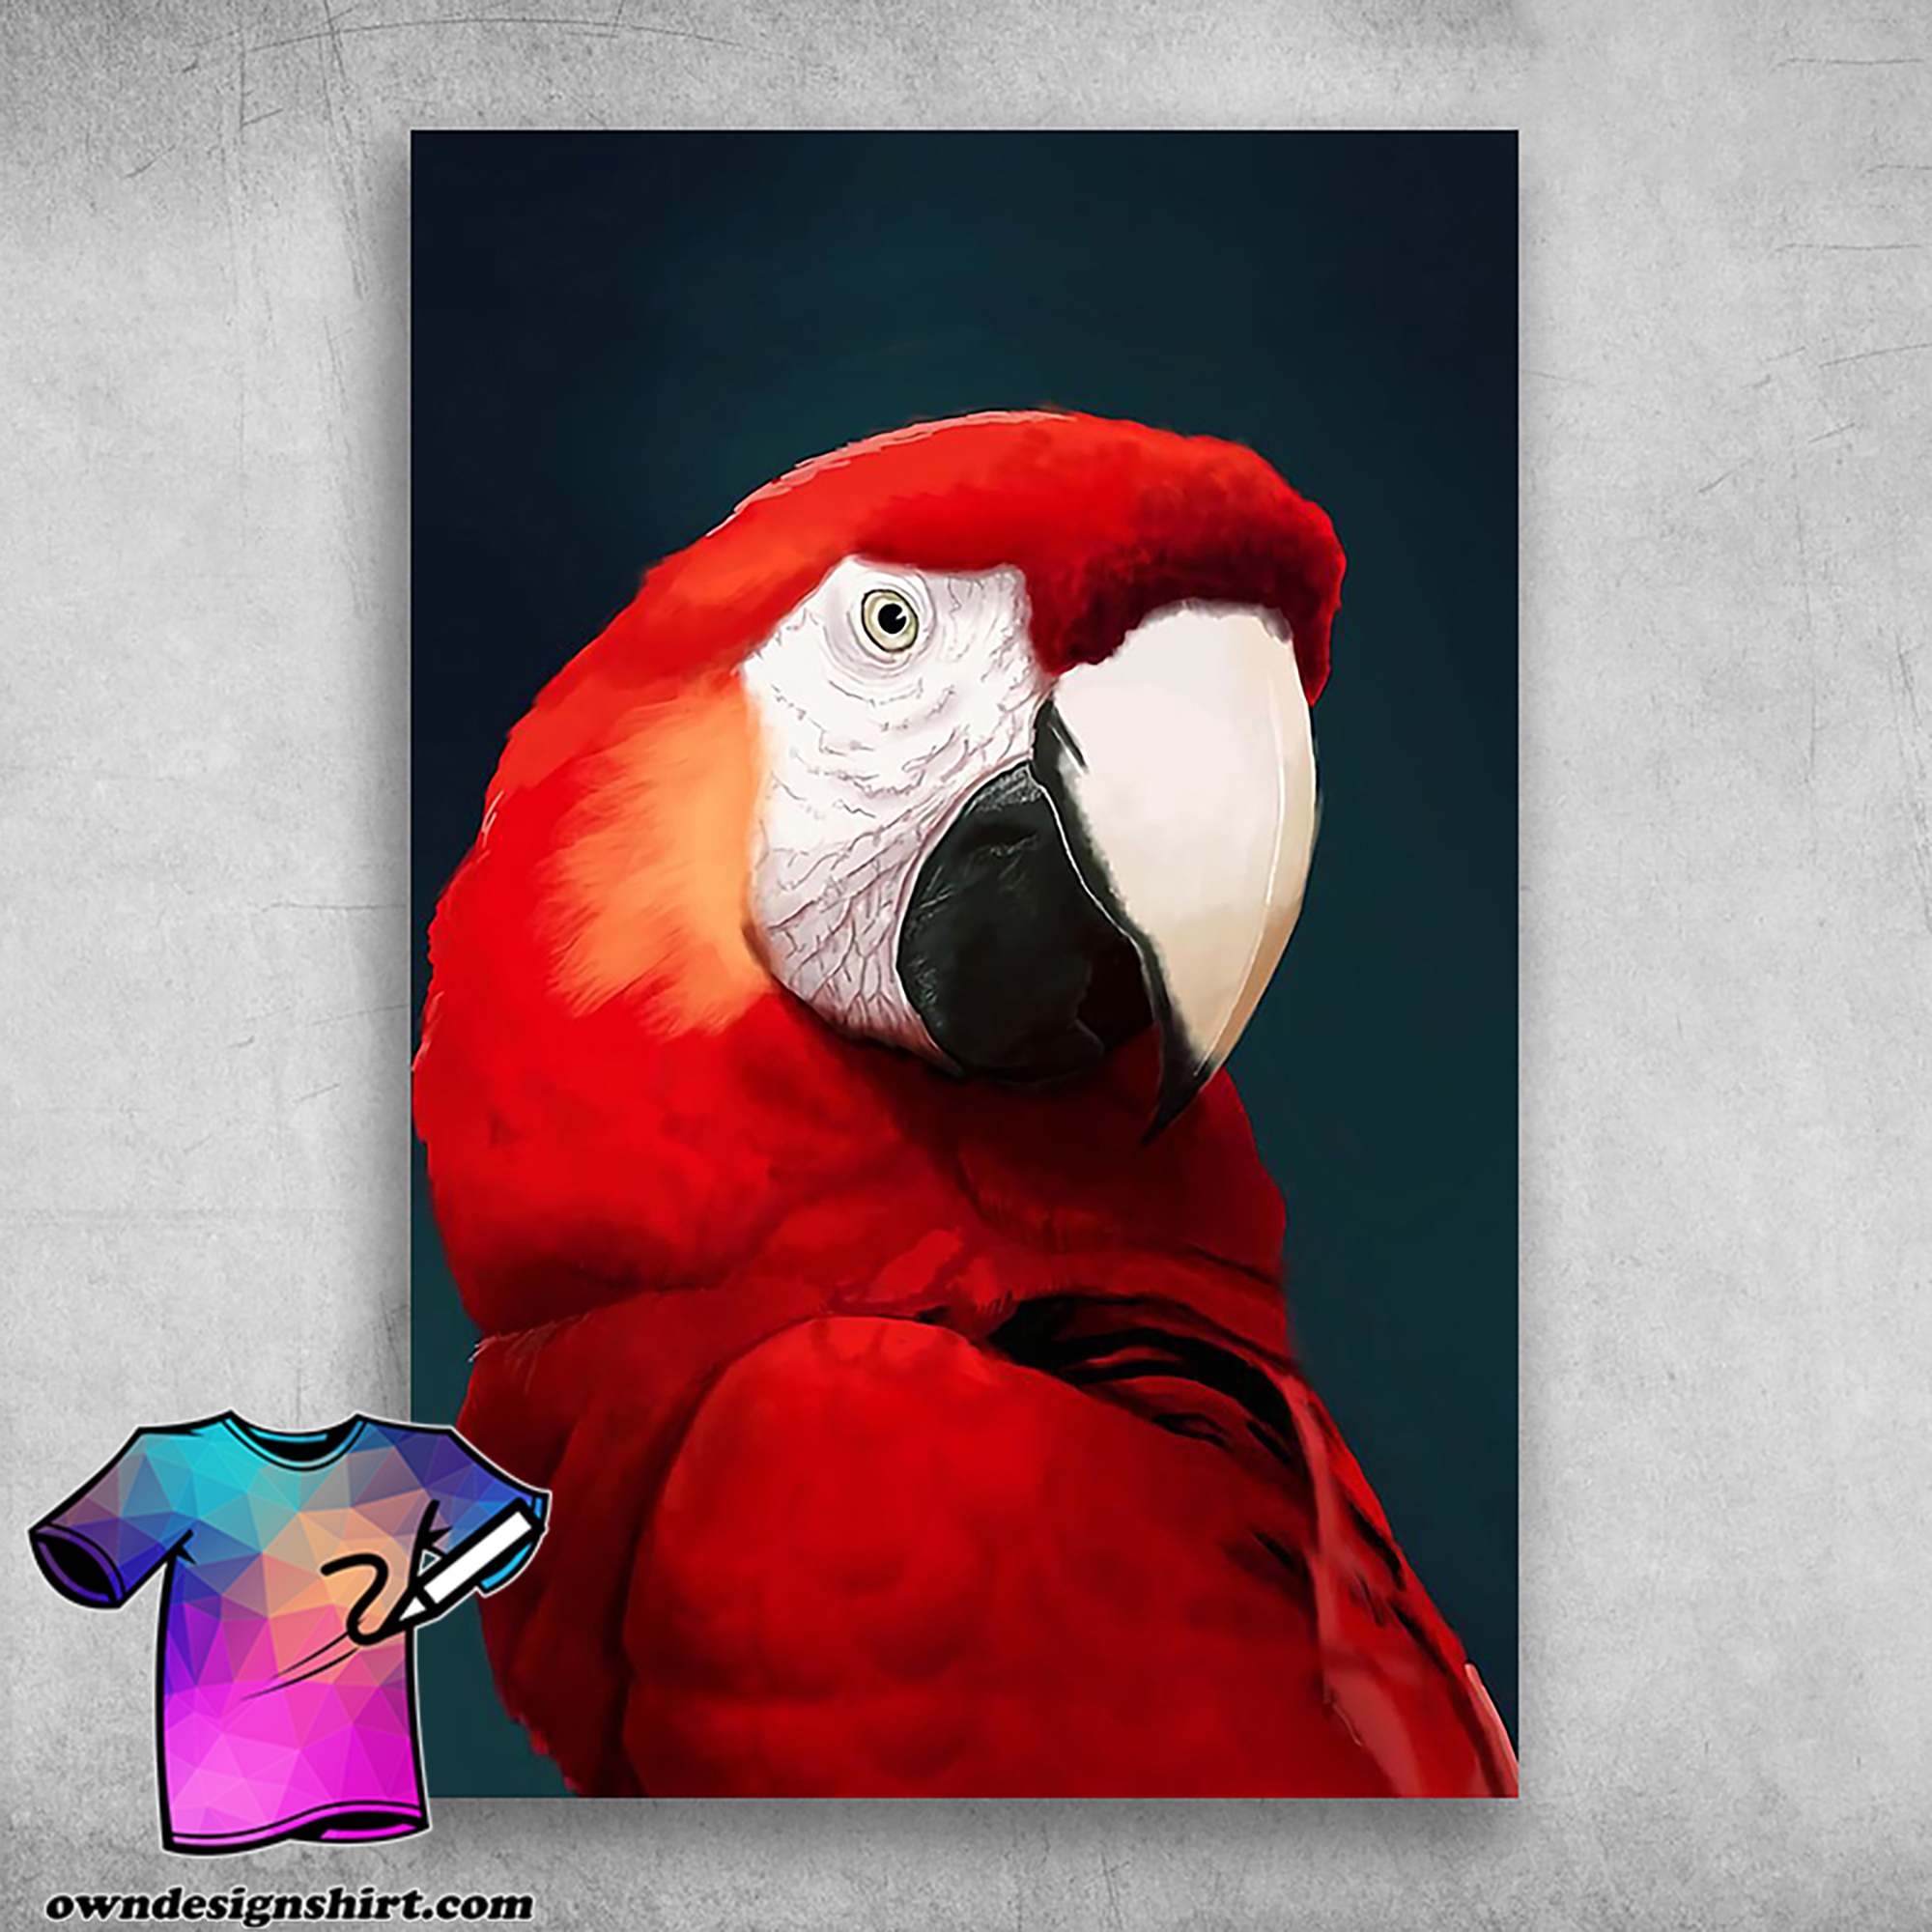 Amazing macaw beautifully designed red parrot poster